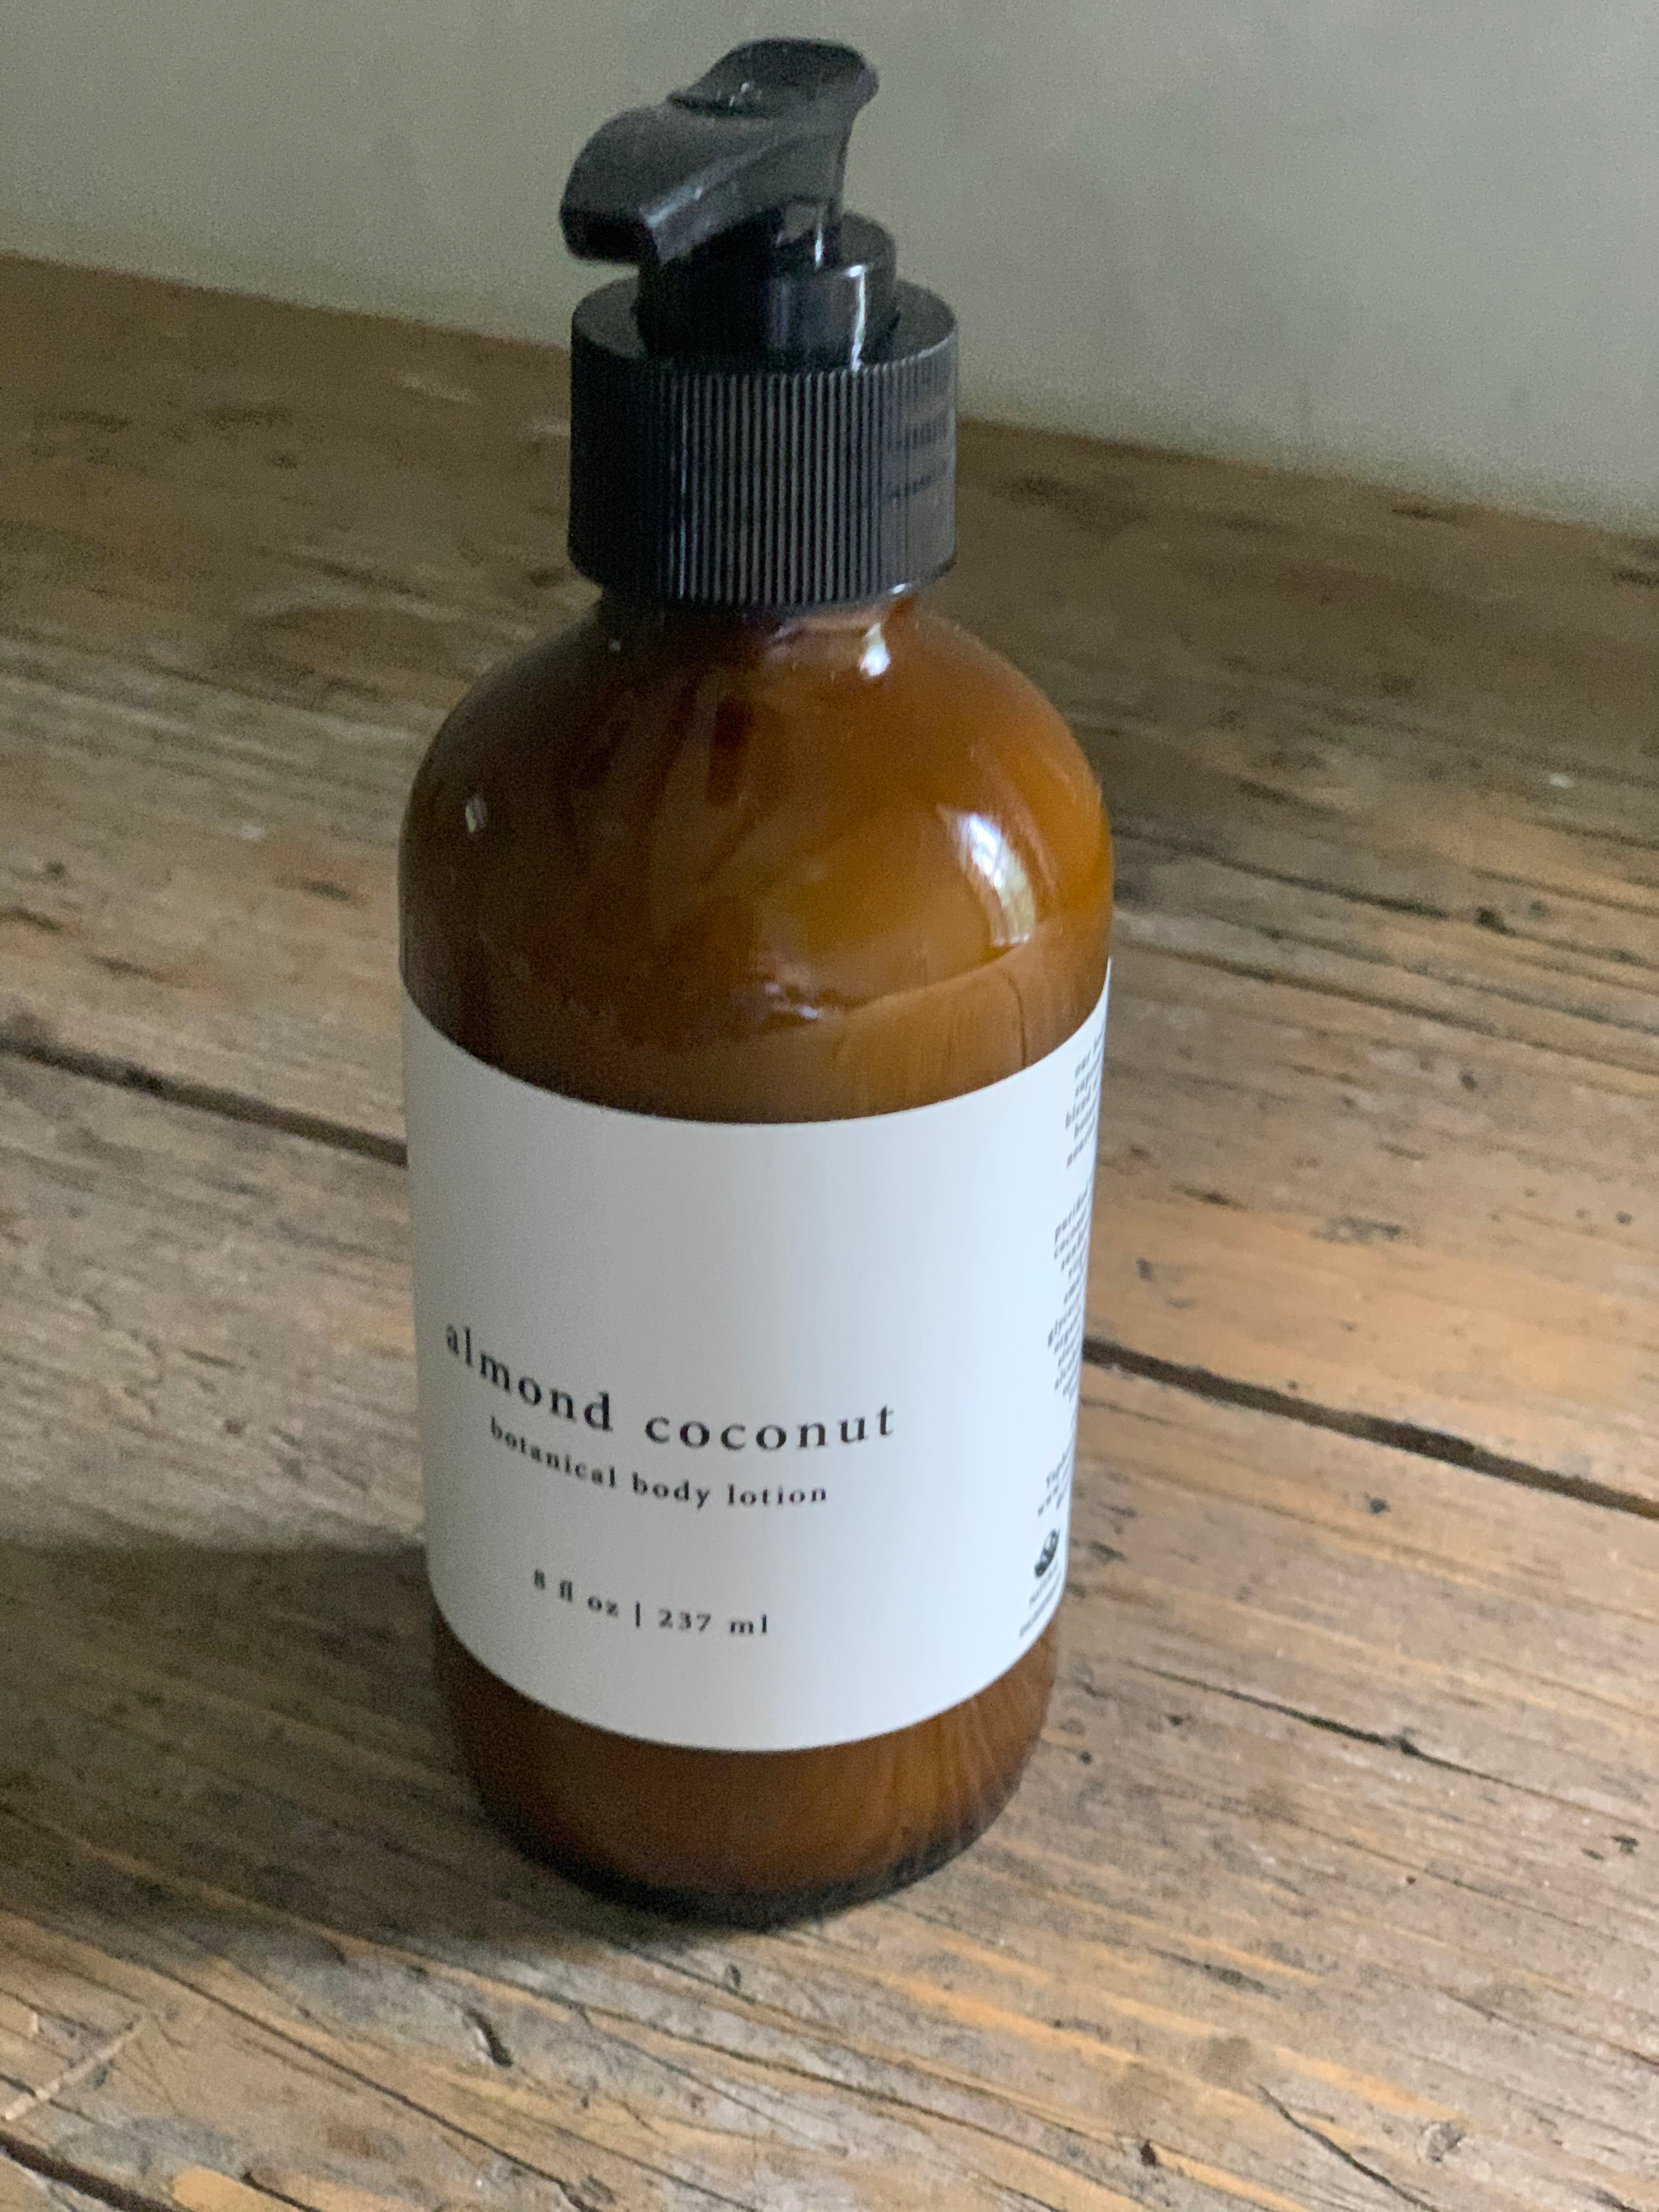 almond coconut body lotion